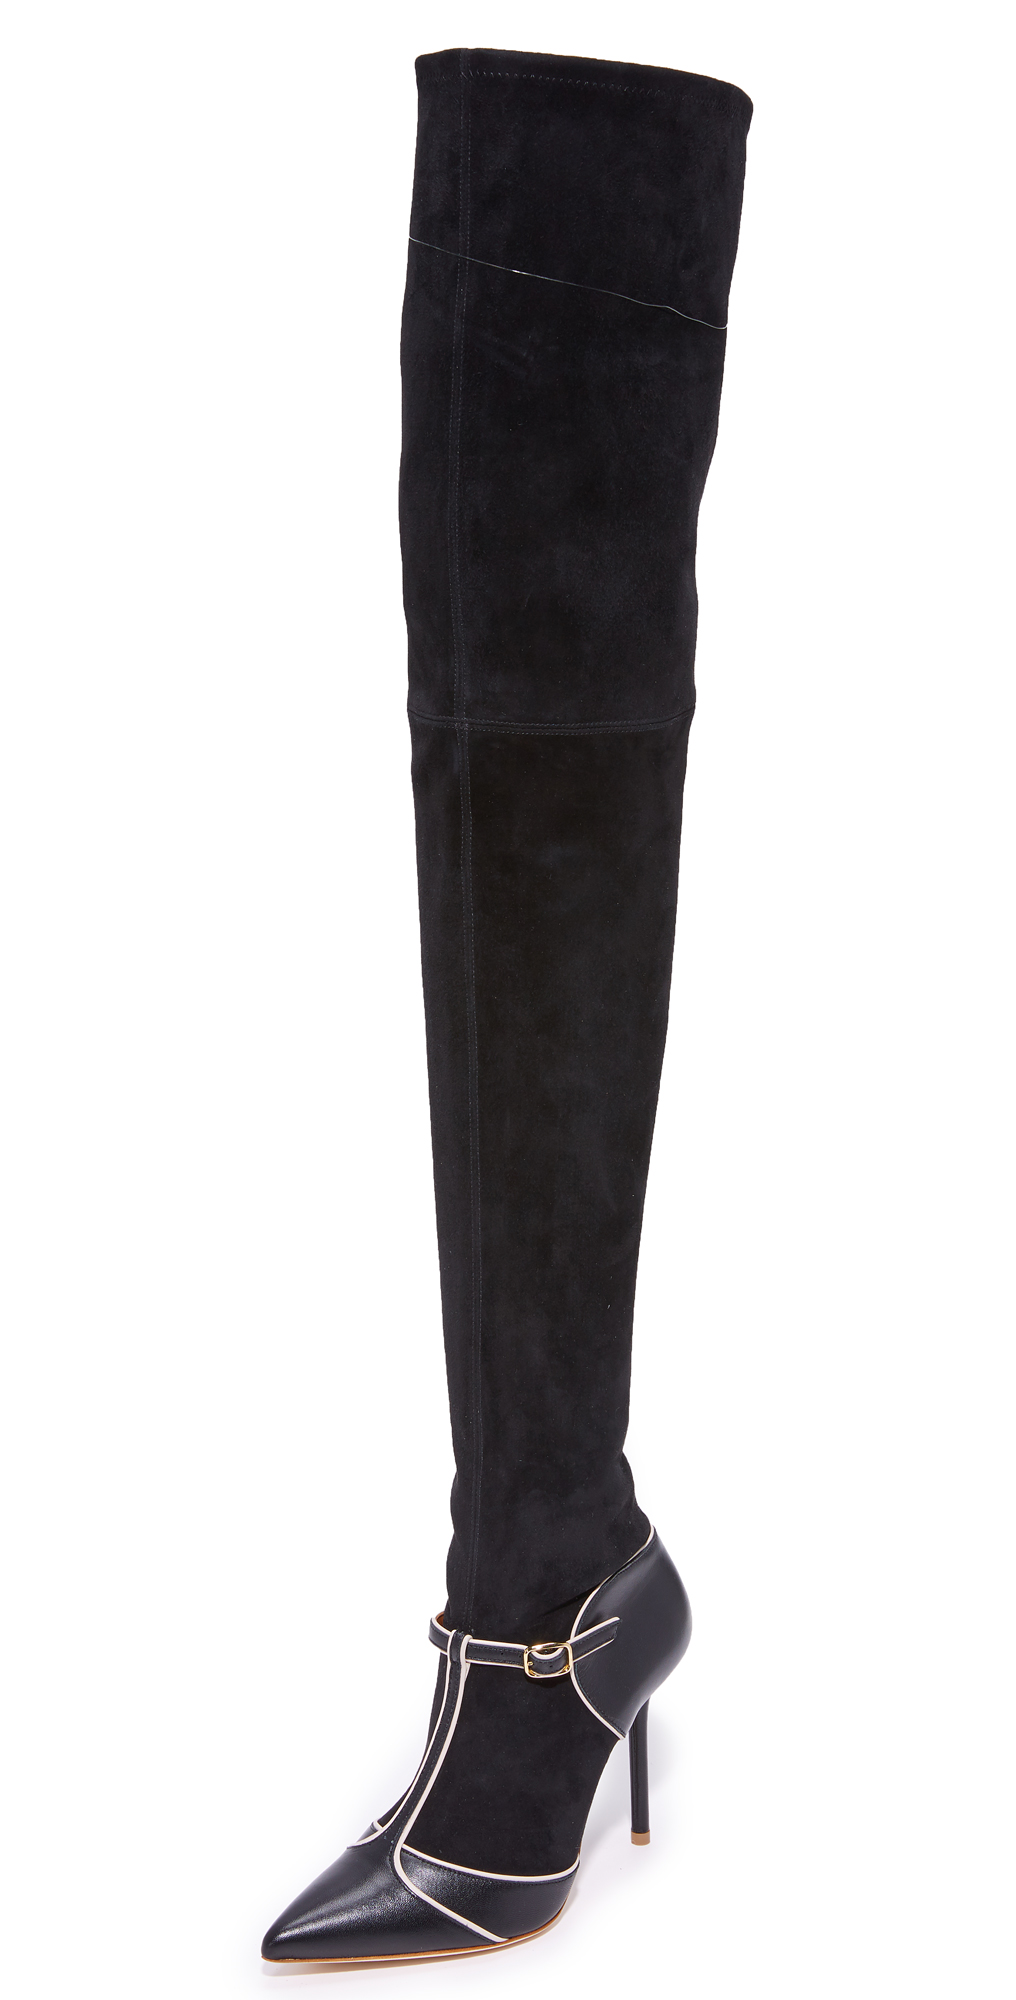 Sadie Over the Knee Boots Malone Souliers